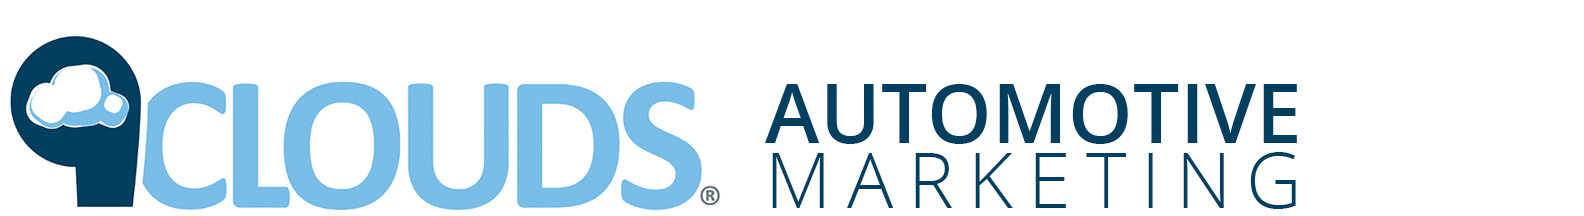 Learn how to predict customer behavior with this free automotive marketing eBook!